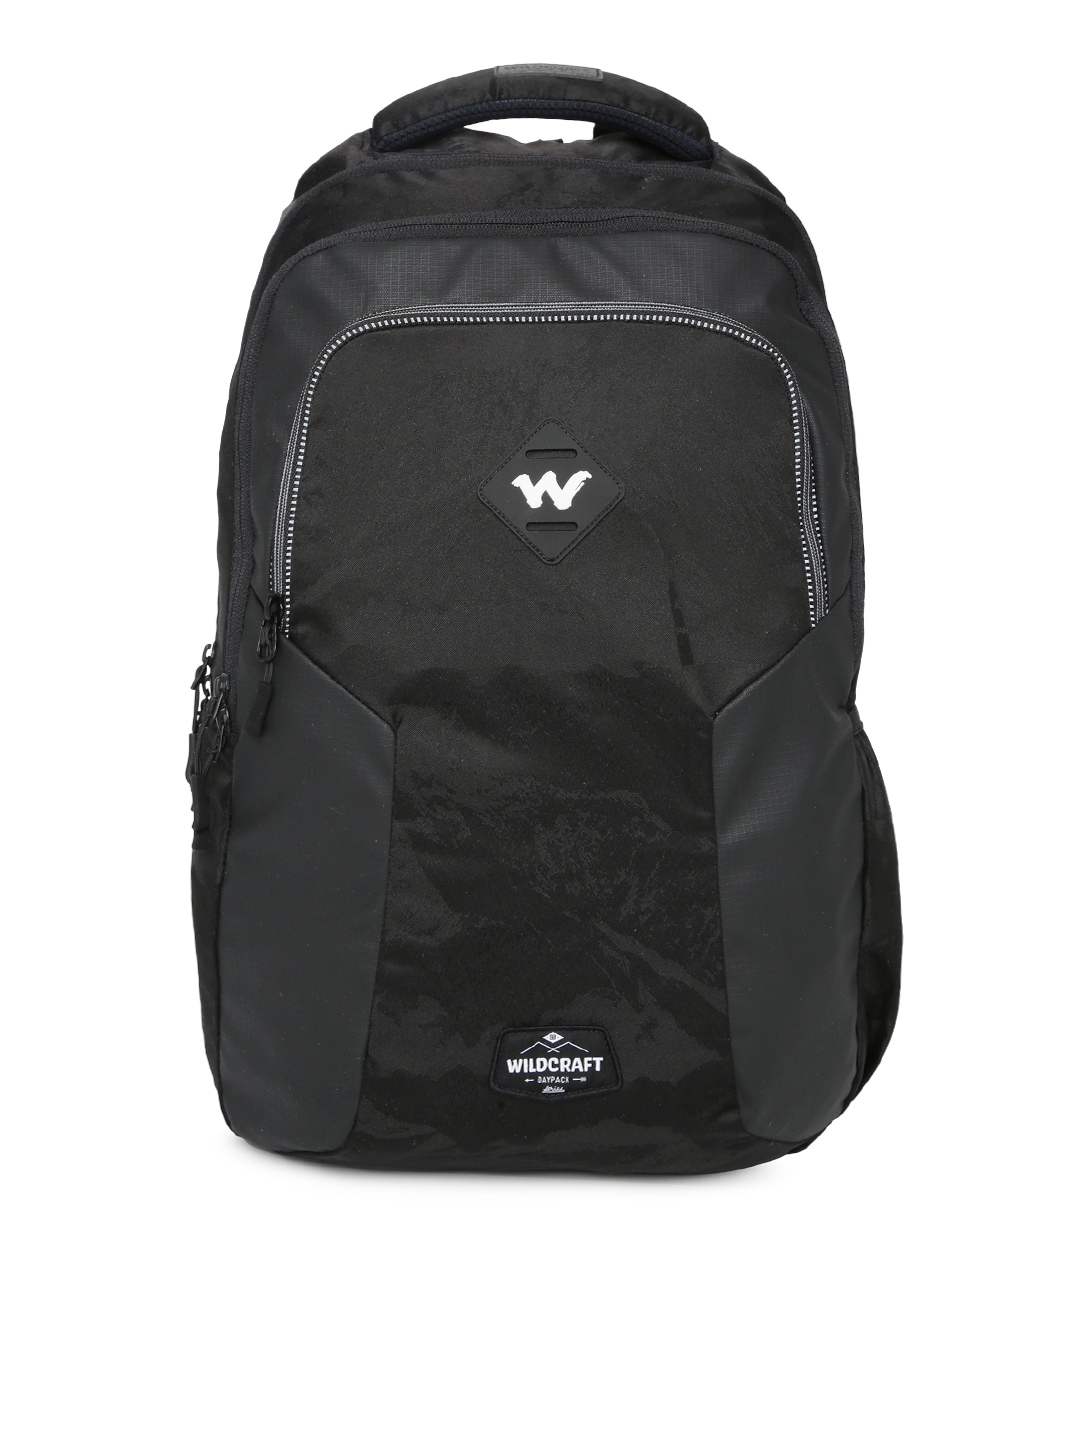 Wildcraft Bags For Men Backpacks More - Buy Wildcraft Bags For Men Backpacks  More online in India bfadb901fa6de